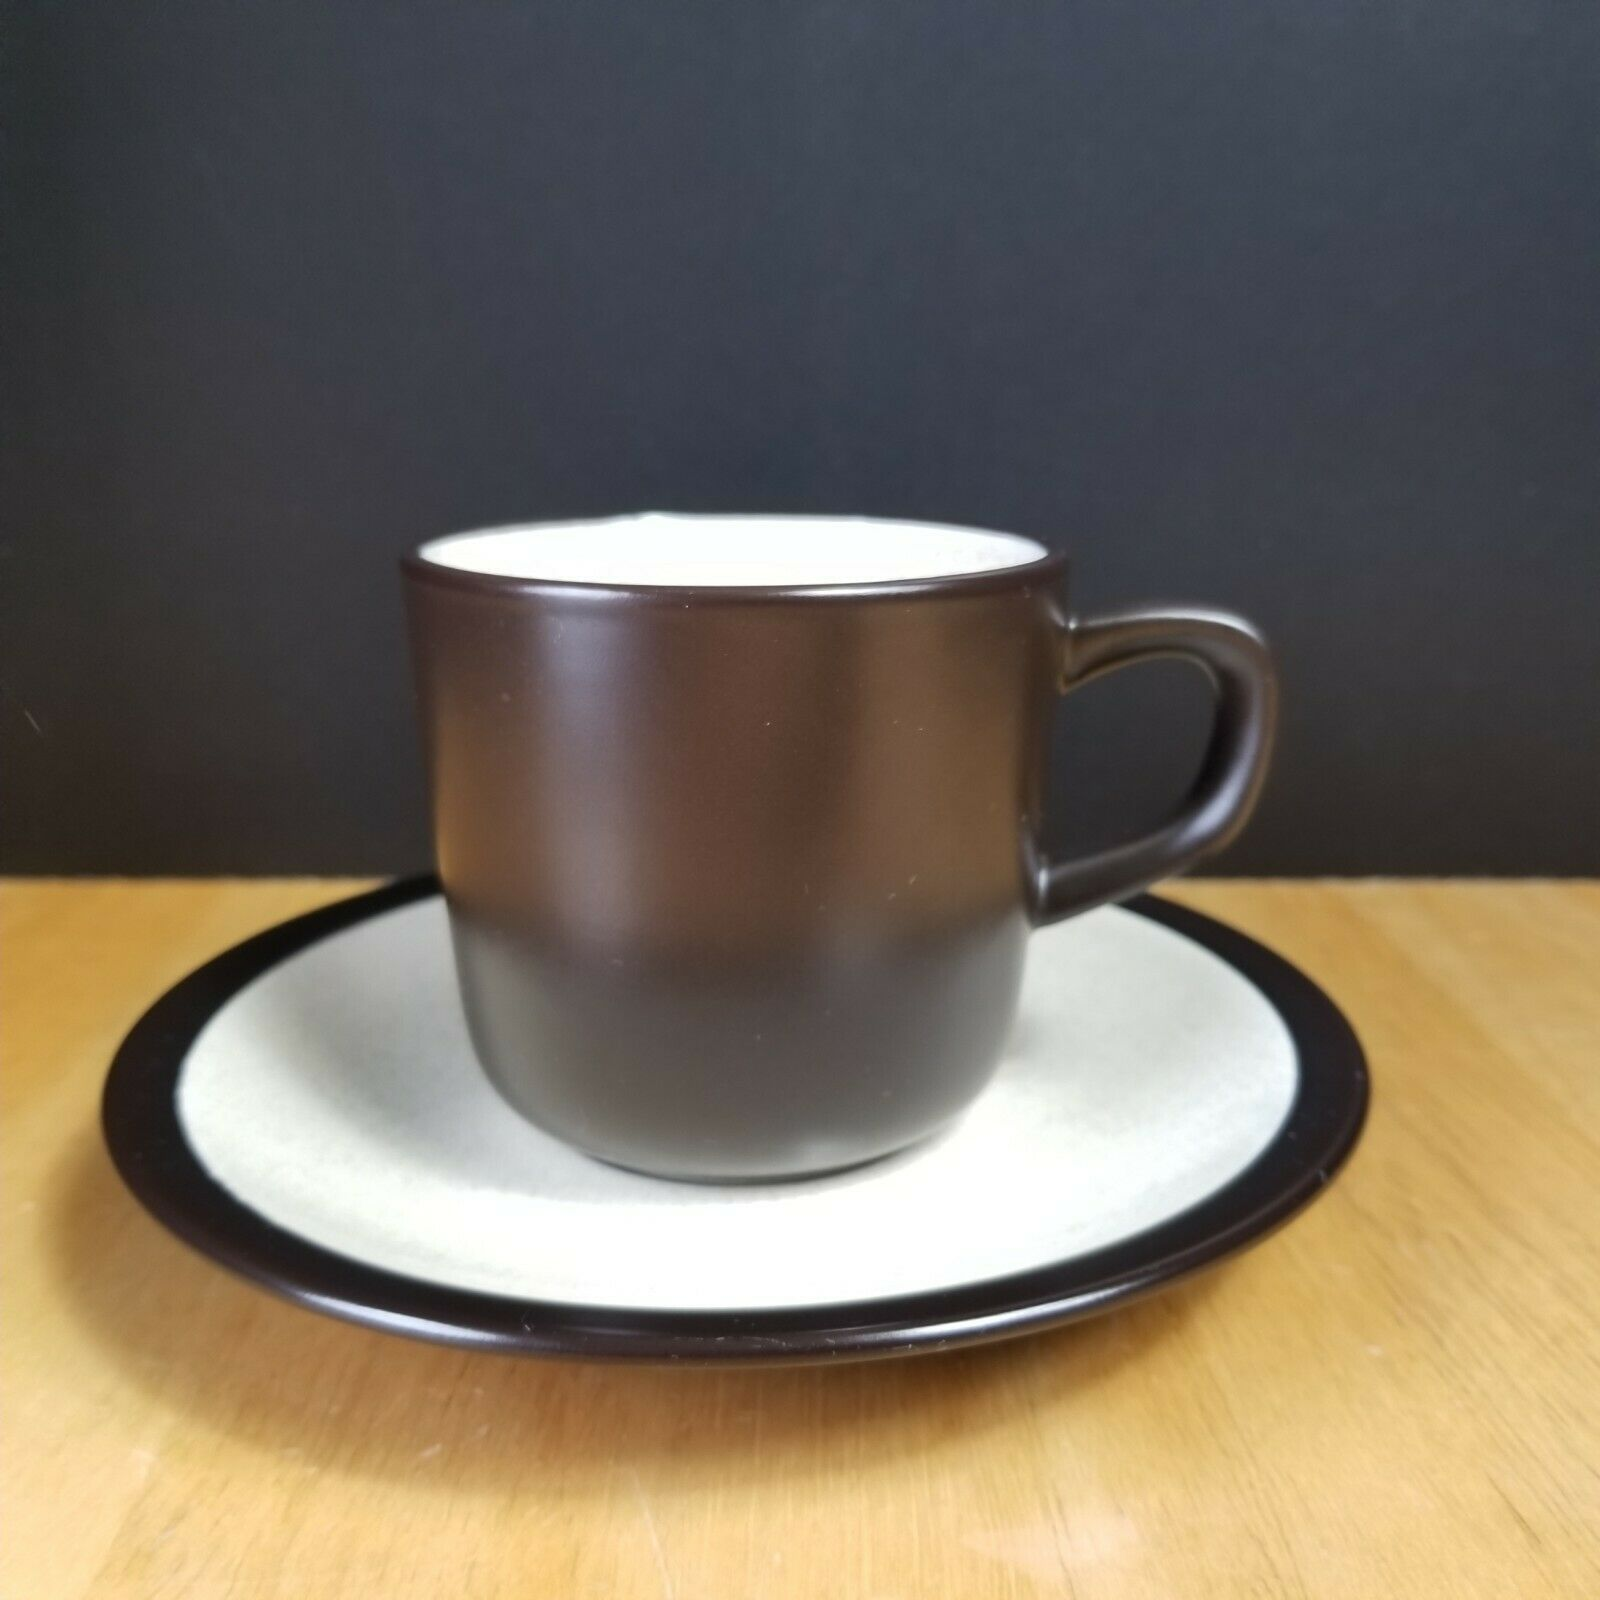 Primary image for Mikasa Terra Stone Vanilla E1955 Cup & Saucer Set Speckled Beige Brown Trim